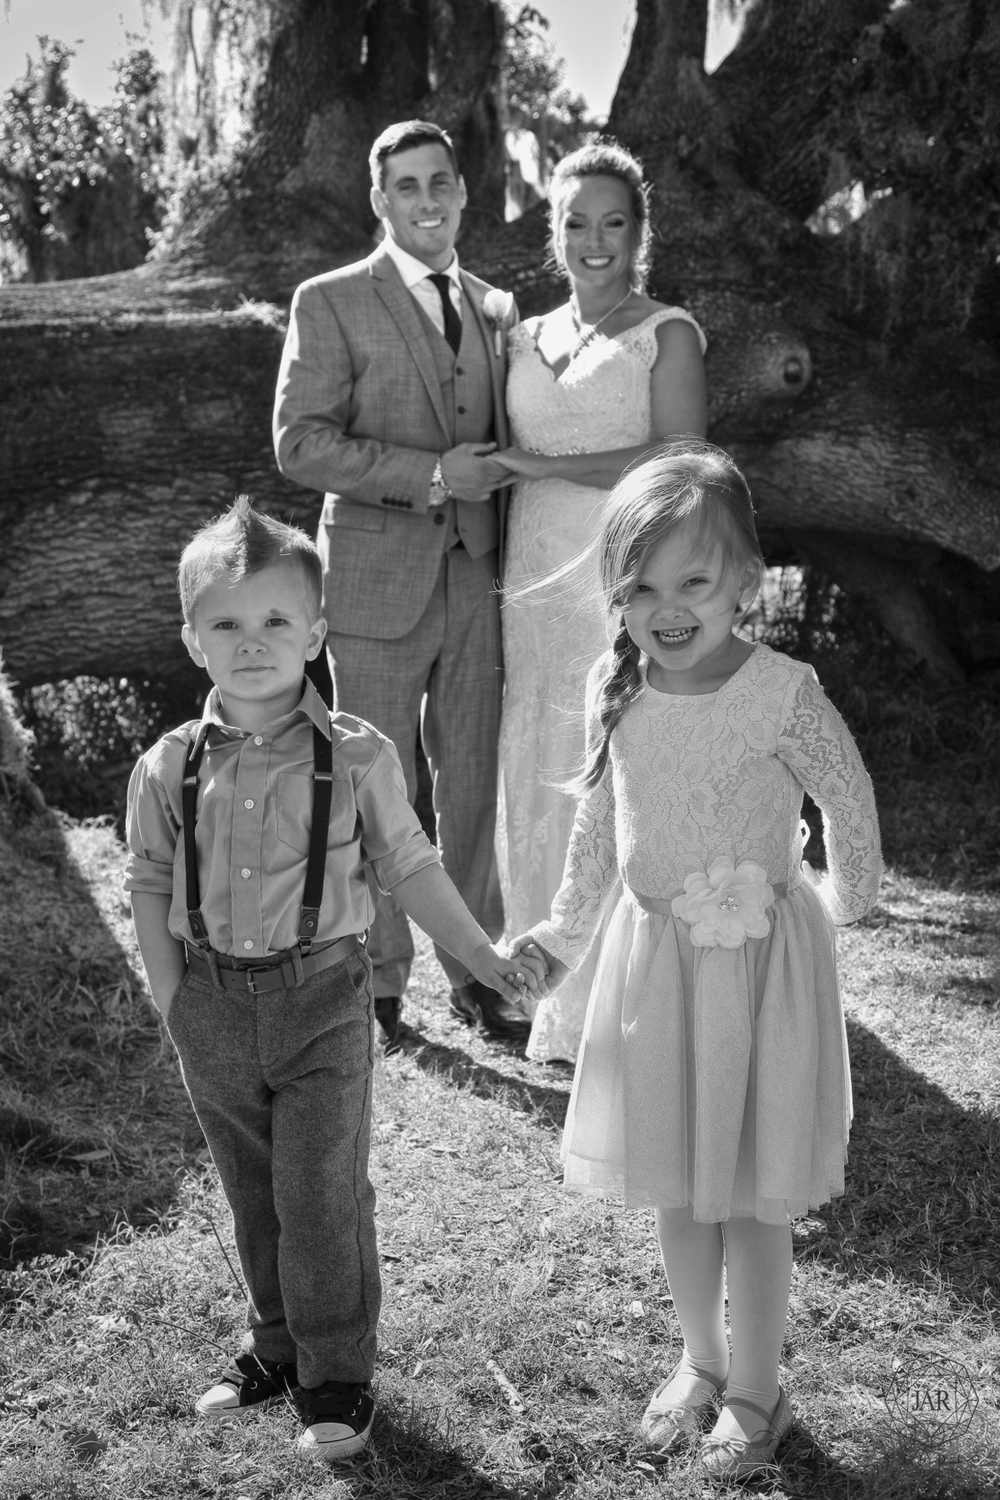 15-kids-cute-hipster-outfit-suspenders-wedding-jarstudio.JPG